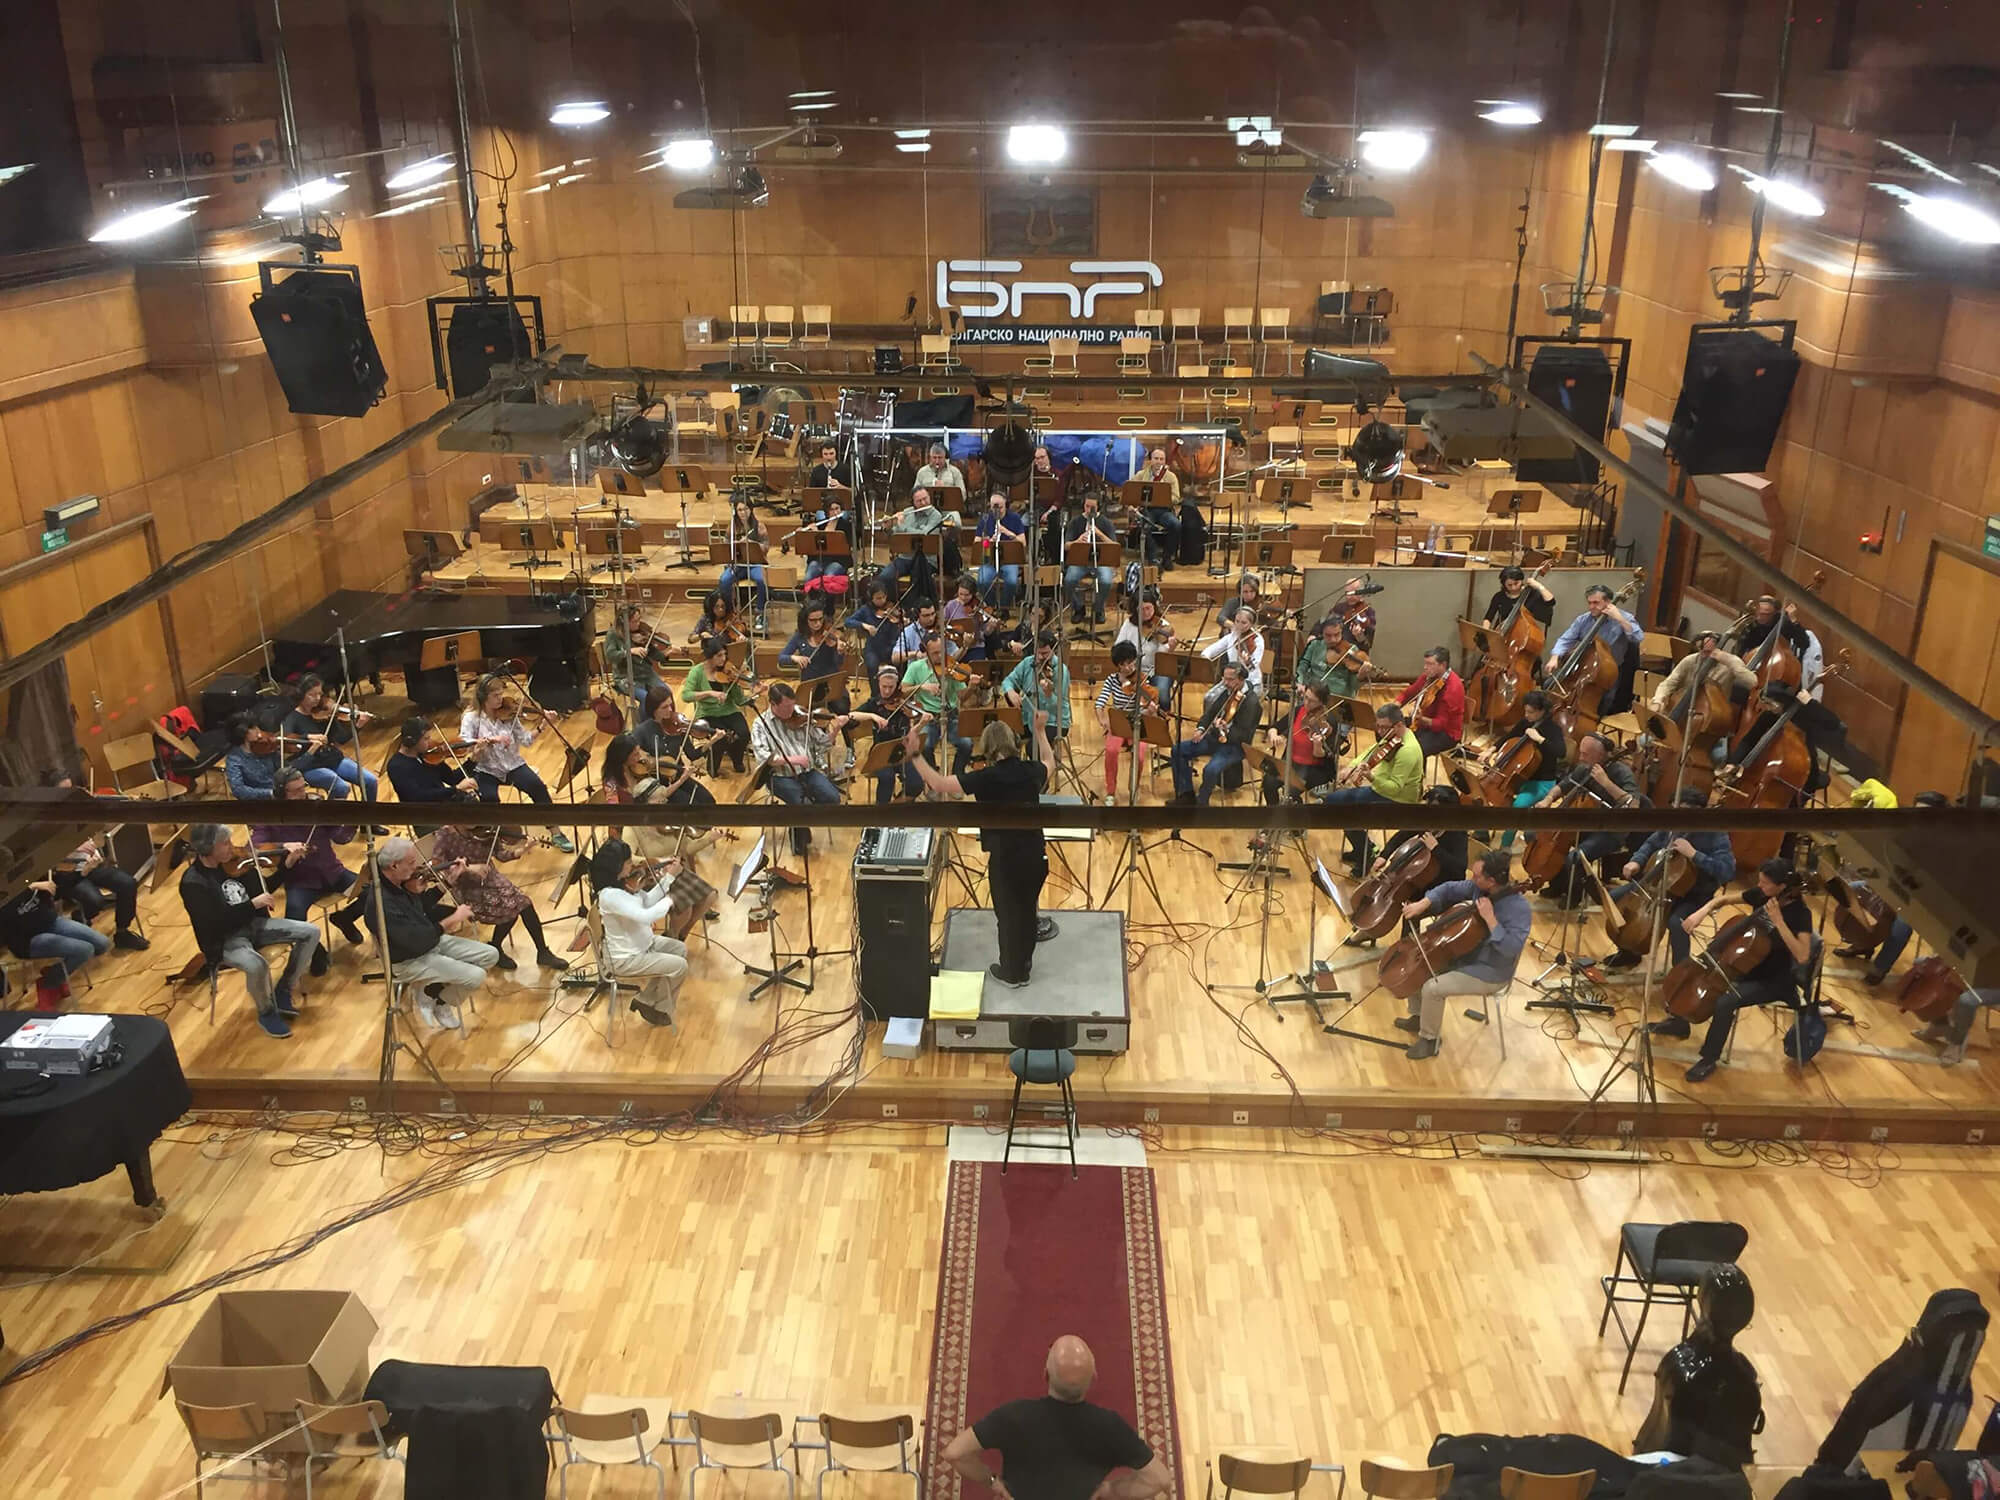 Sonoton Trailer Tracks sessions with the Bulgarian Film Orchestra, conducted by Gregor Narholz.